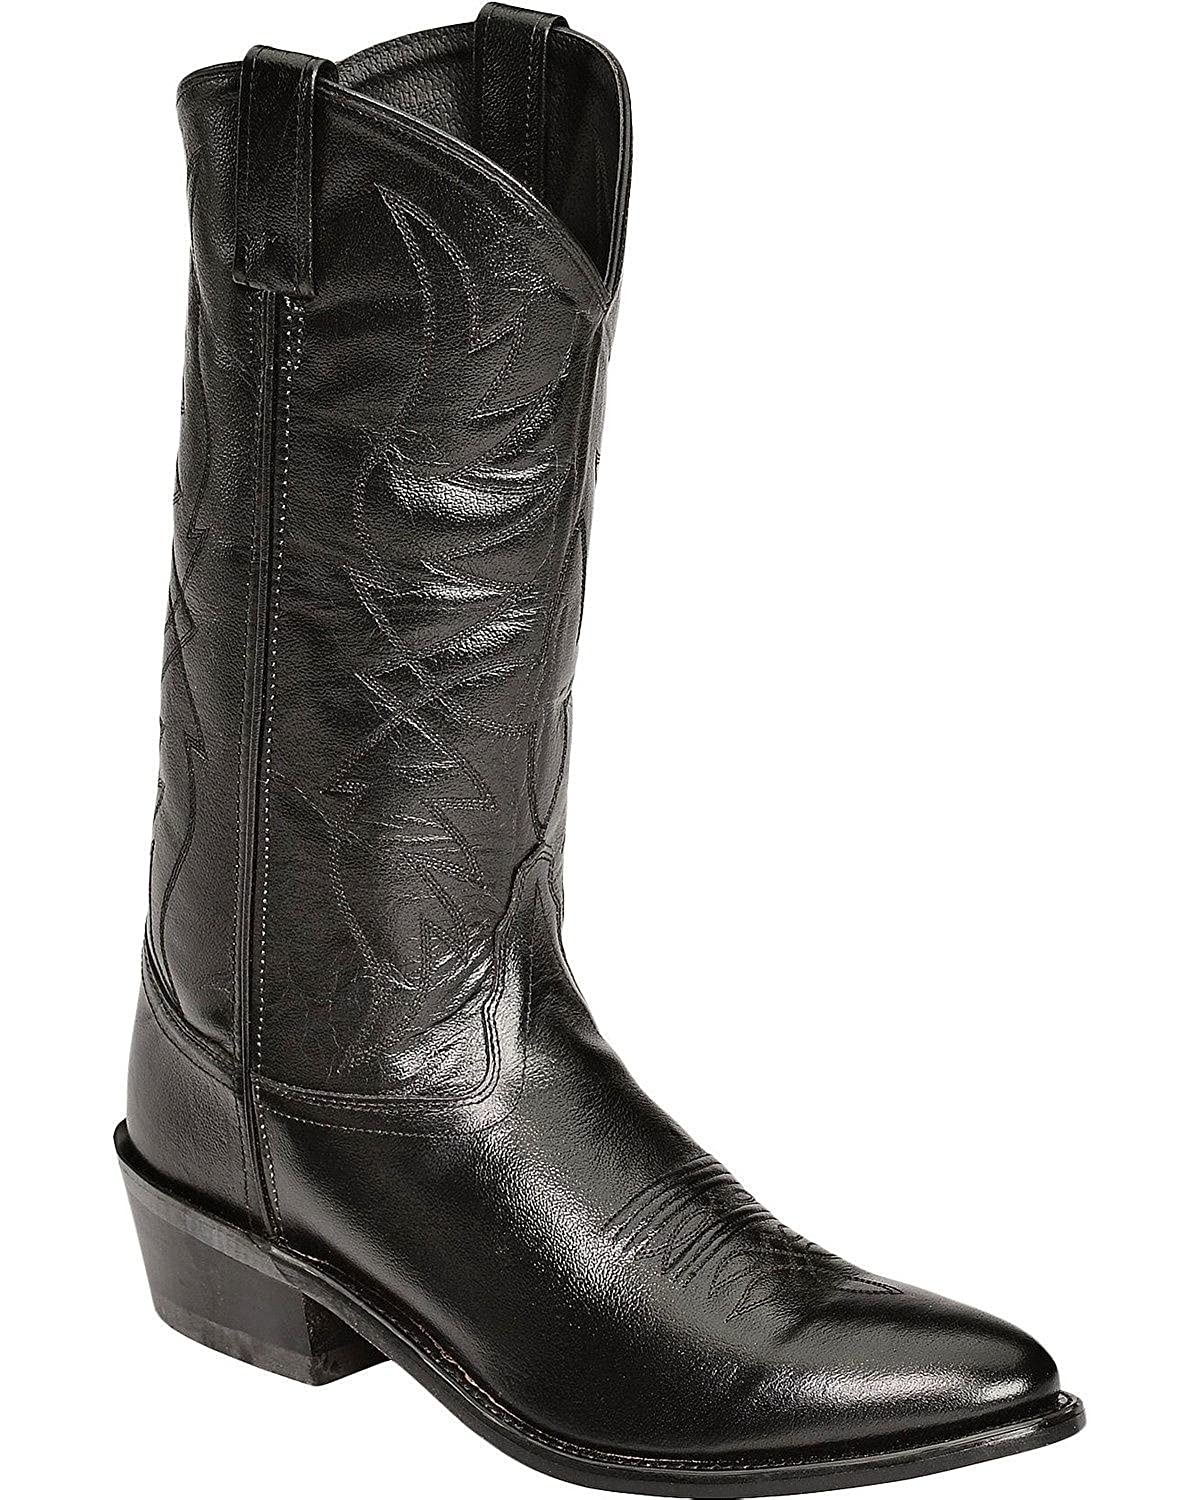 09ee2181808 Old West Men's Smooth Leather Cowboy Boot